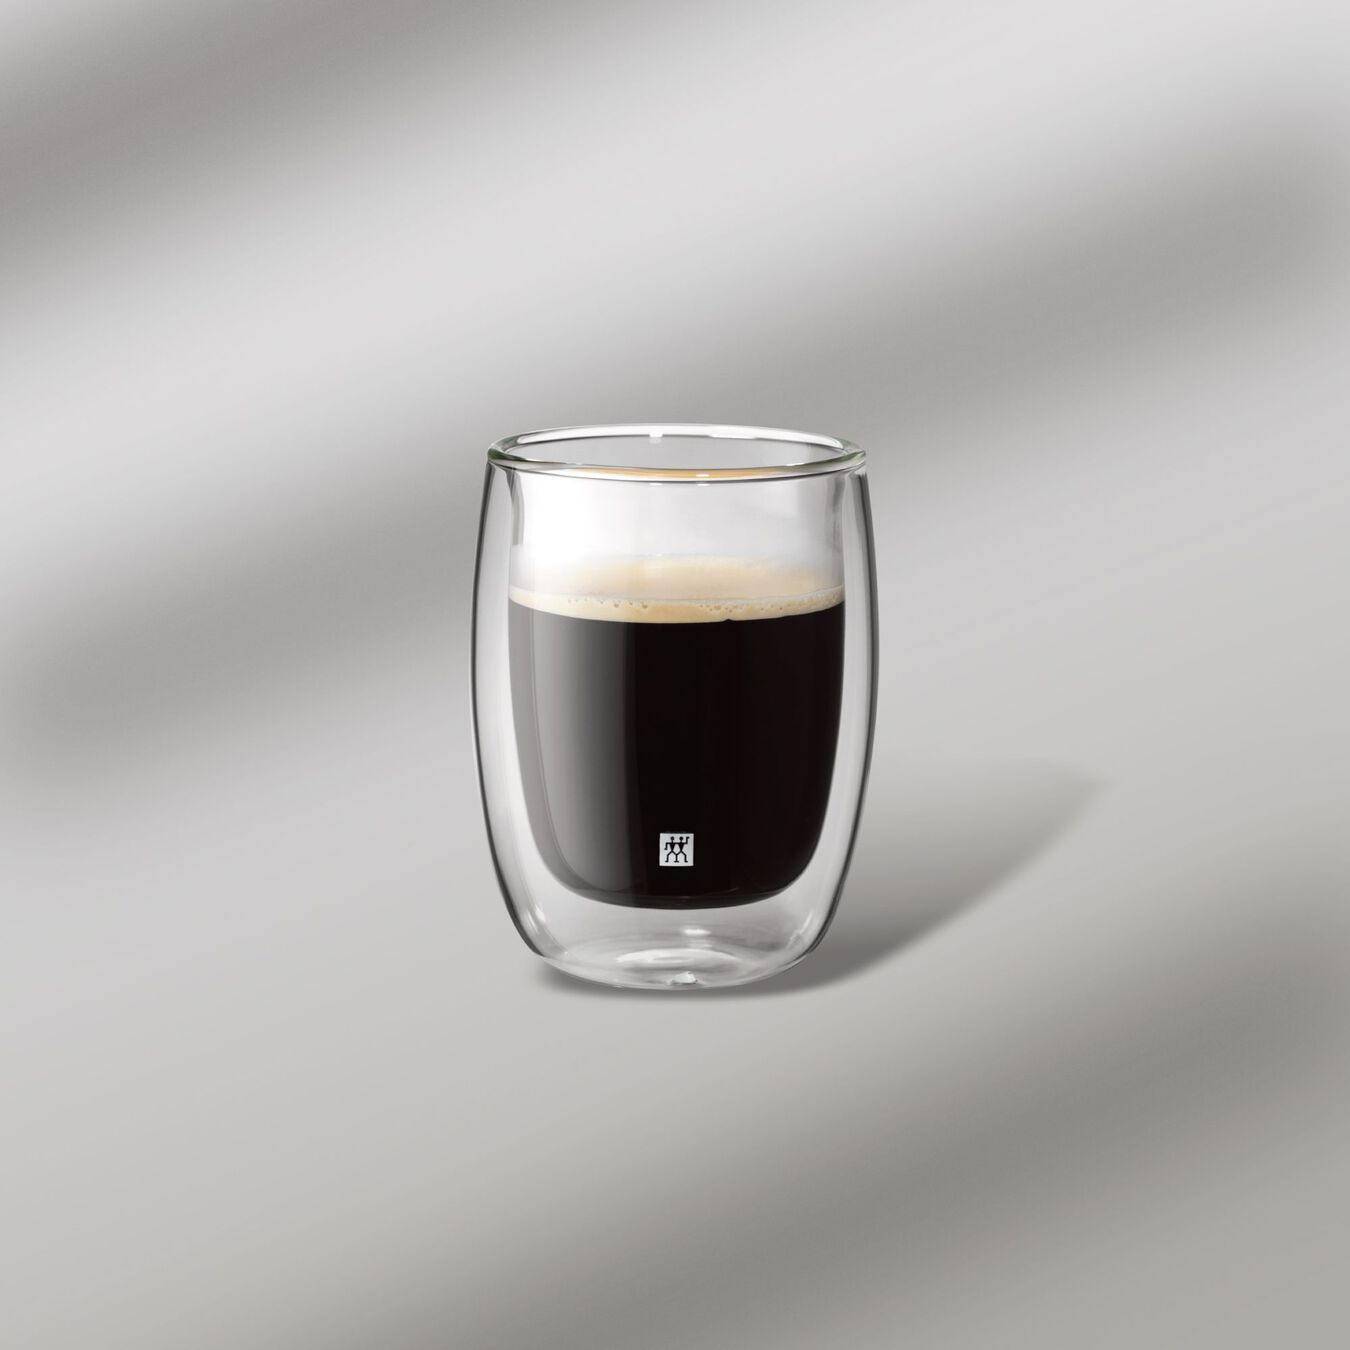 2 Piece Double-Wall Coffee Glass Set,,large 2